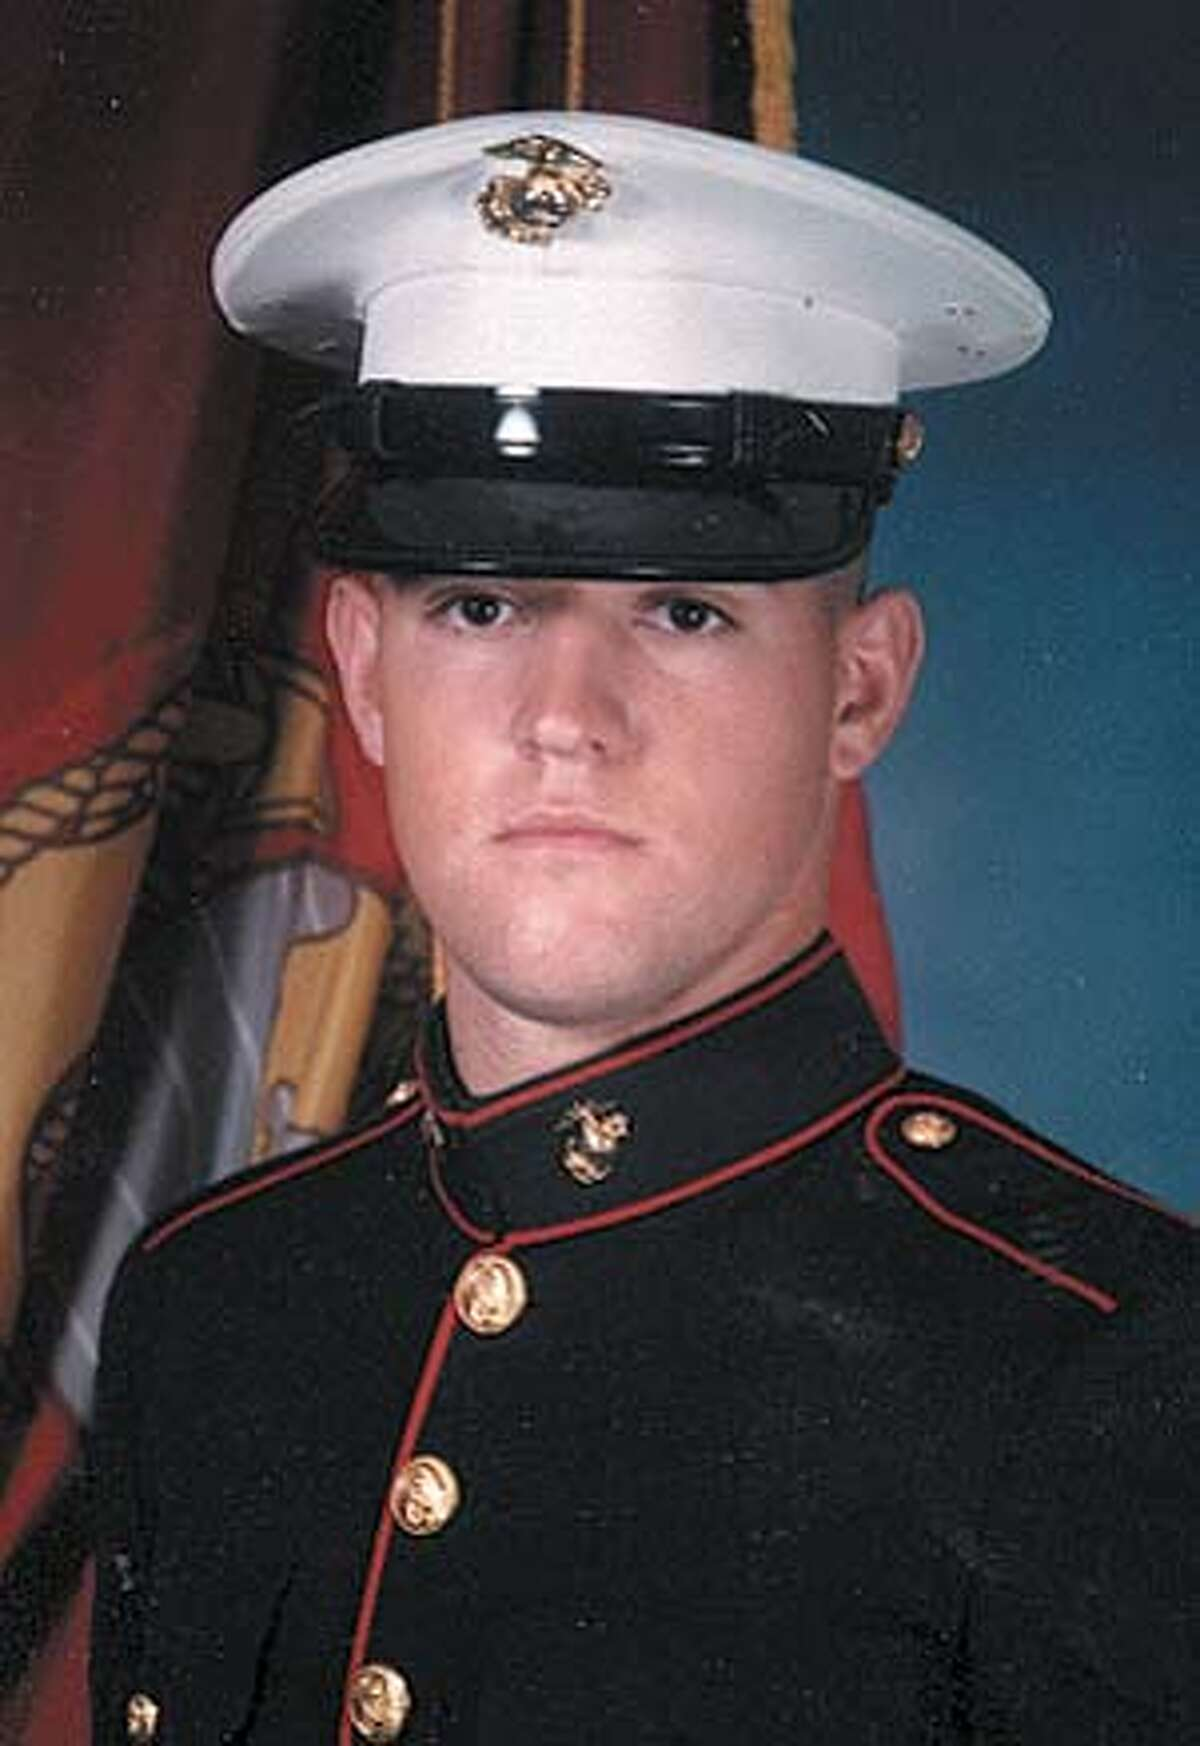 Photo of U.S. Marine Adam Strain. Credit: AP